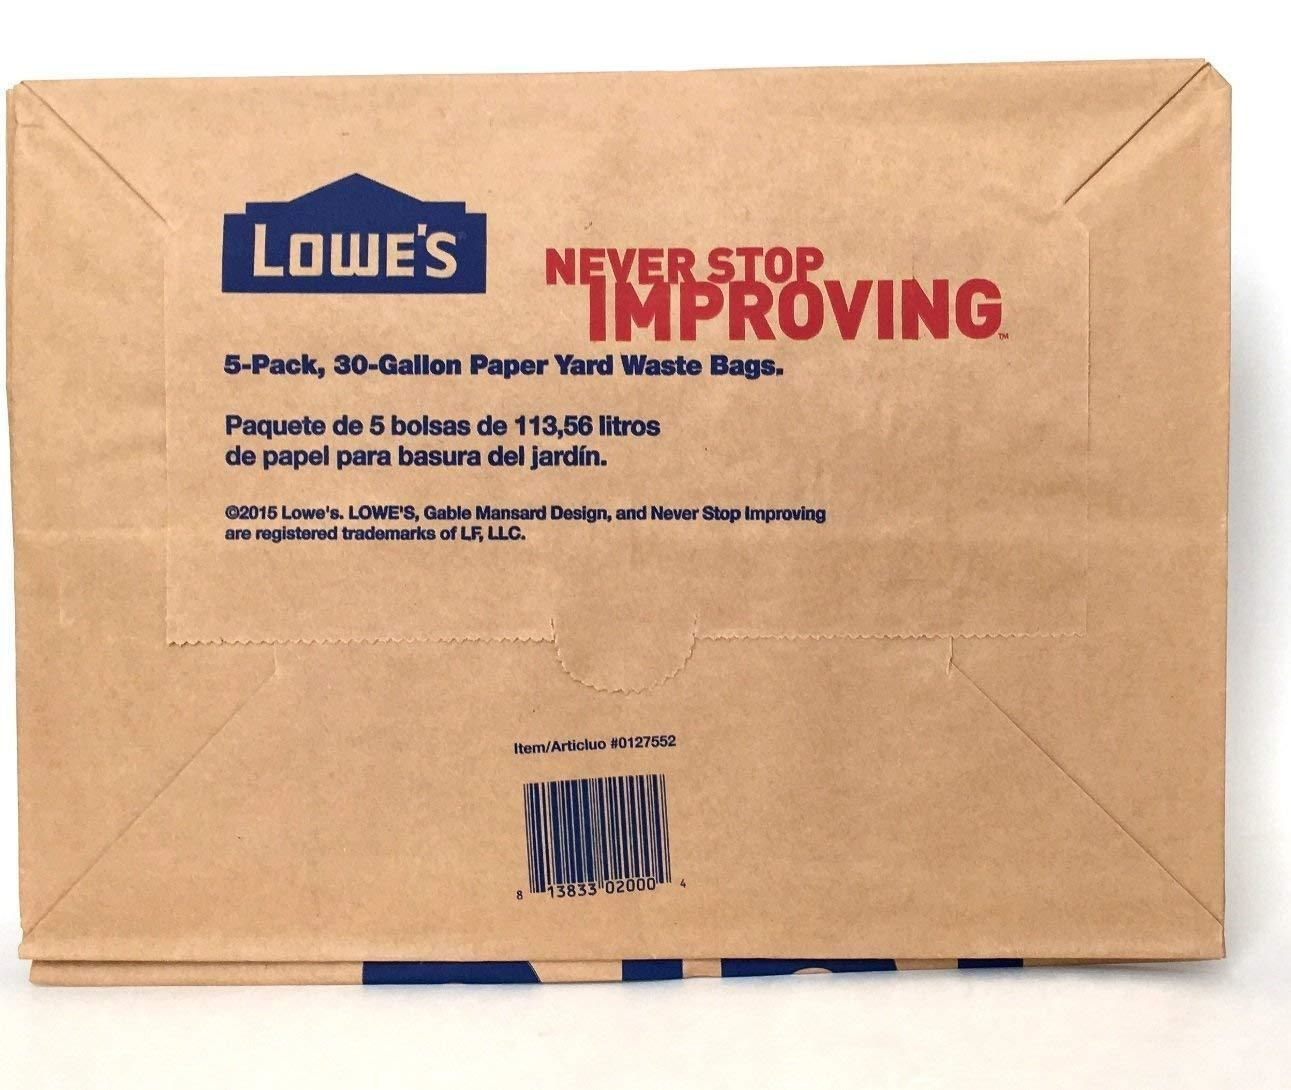 Garden Waste Bags 181024 Lowes 30 Gallon Paper Lawn And